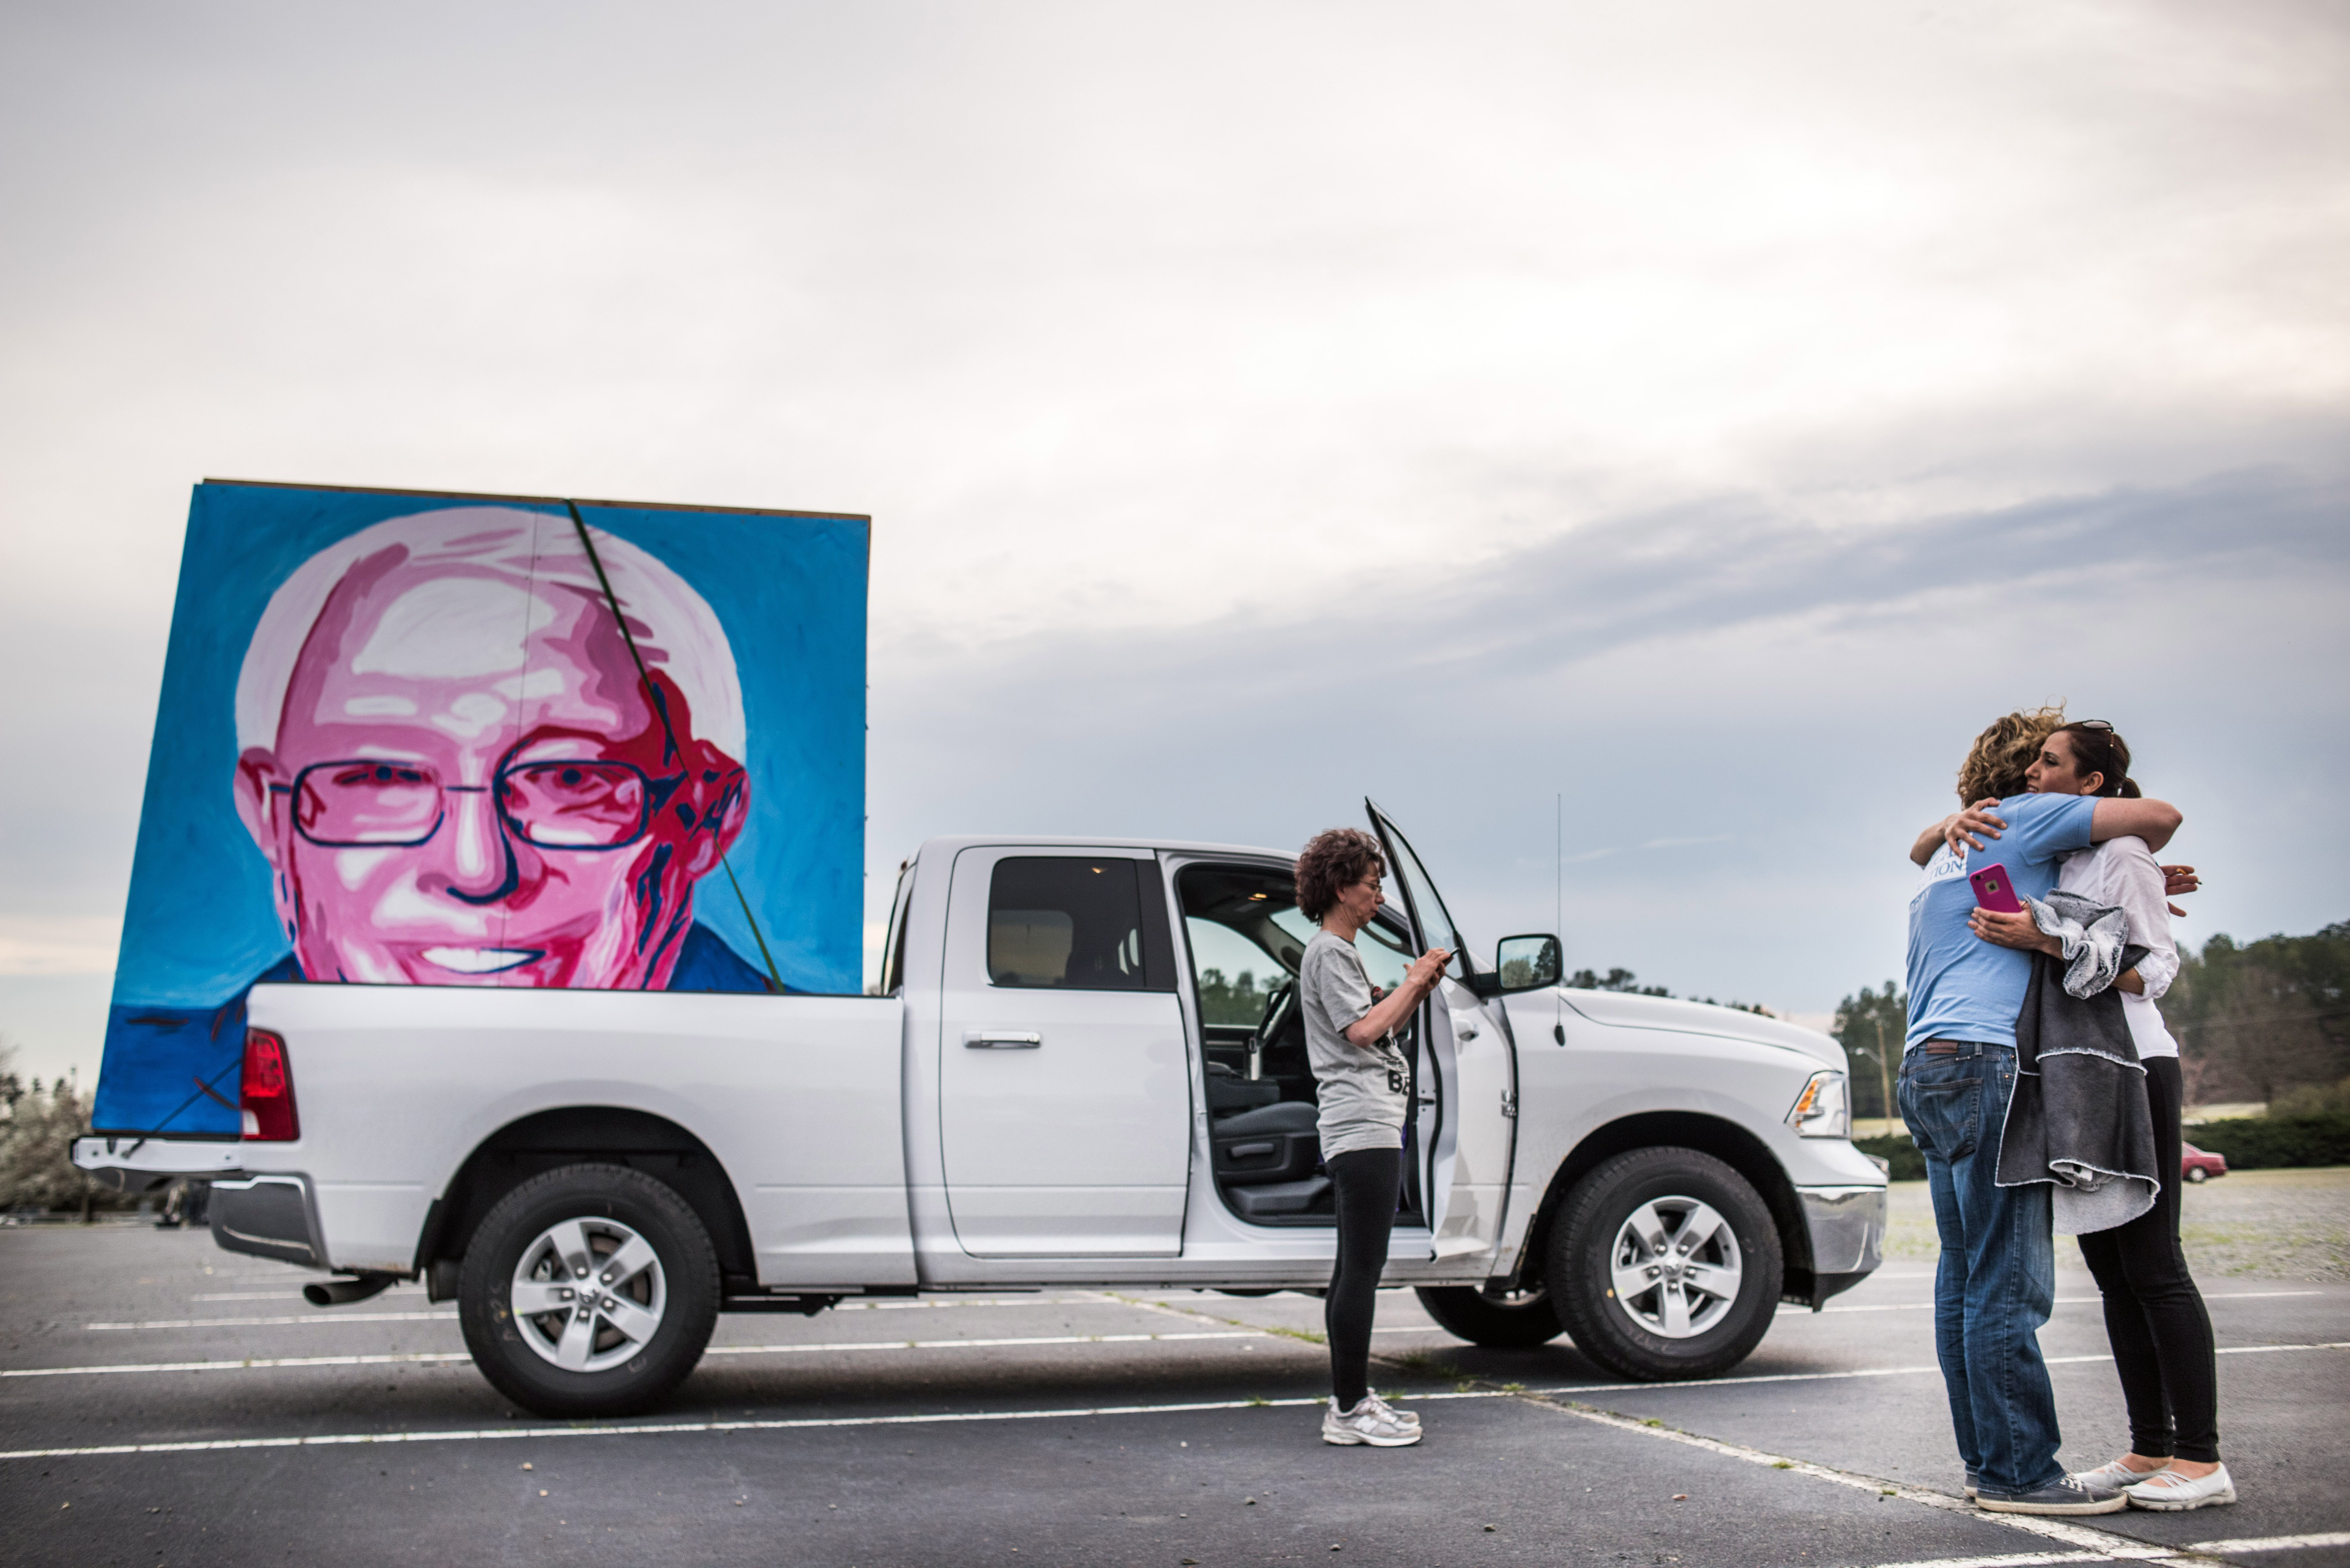 Joseph Kelly, left, hugs Farzaneh Rezaei after loading his large painting showing the likeness of  Bernie Sanders into a truck following a campaign rally on March 14 in Charlotte, N.C.